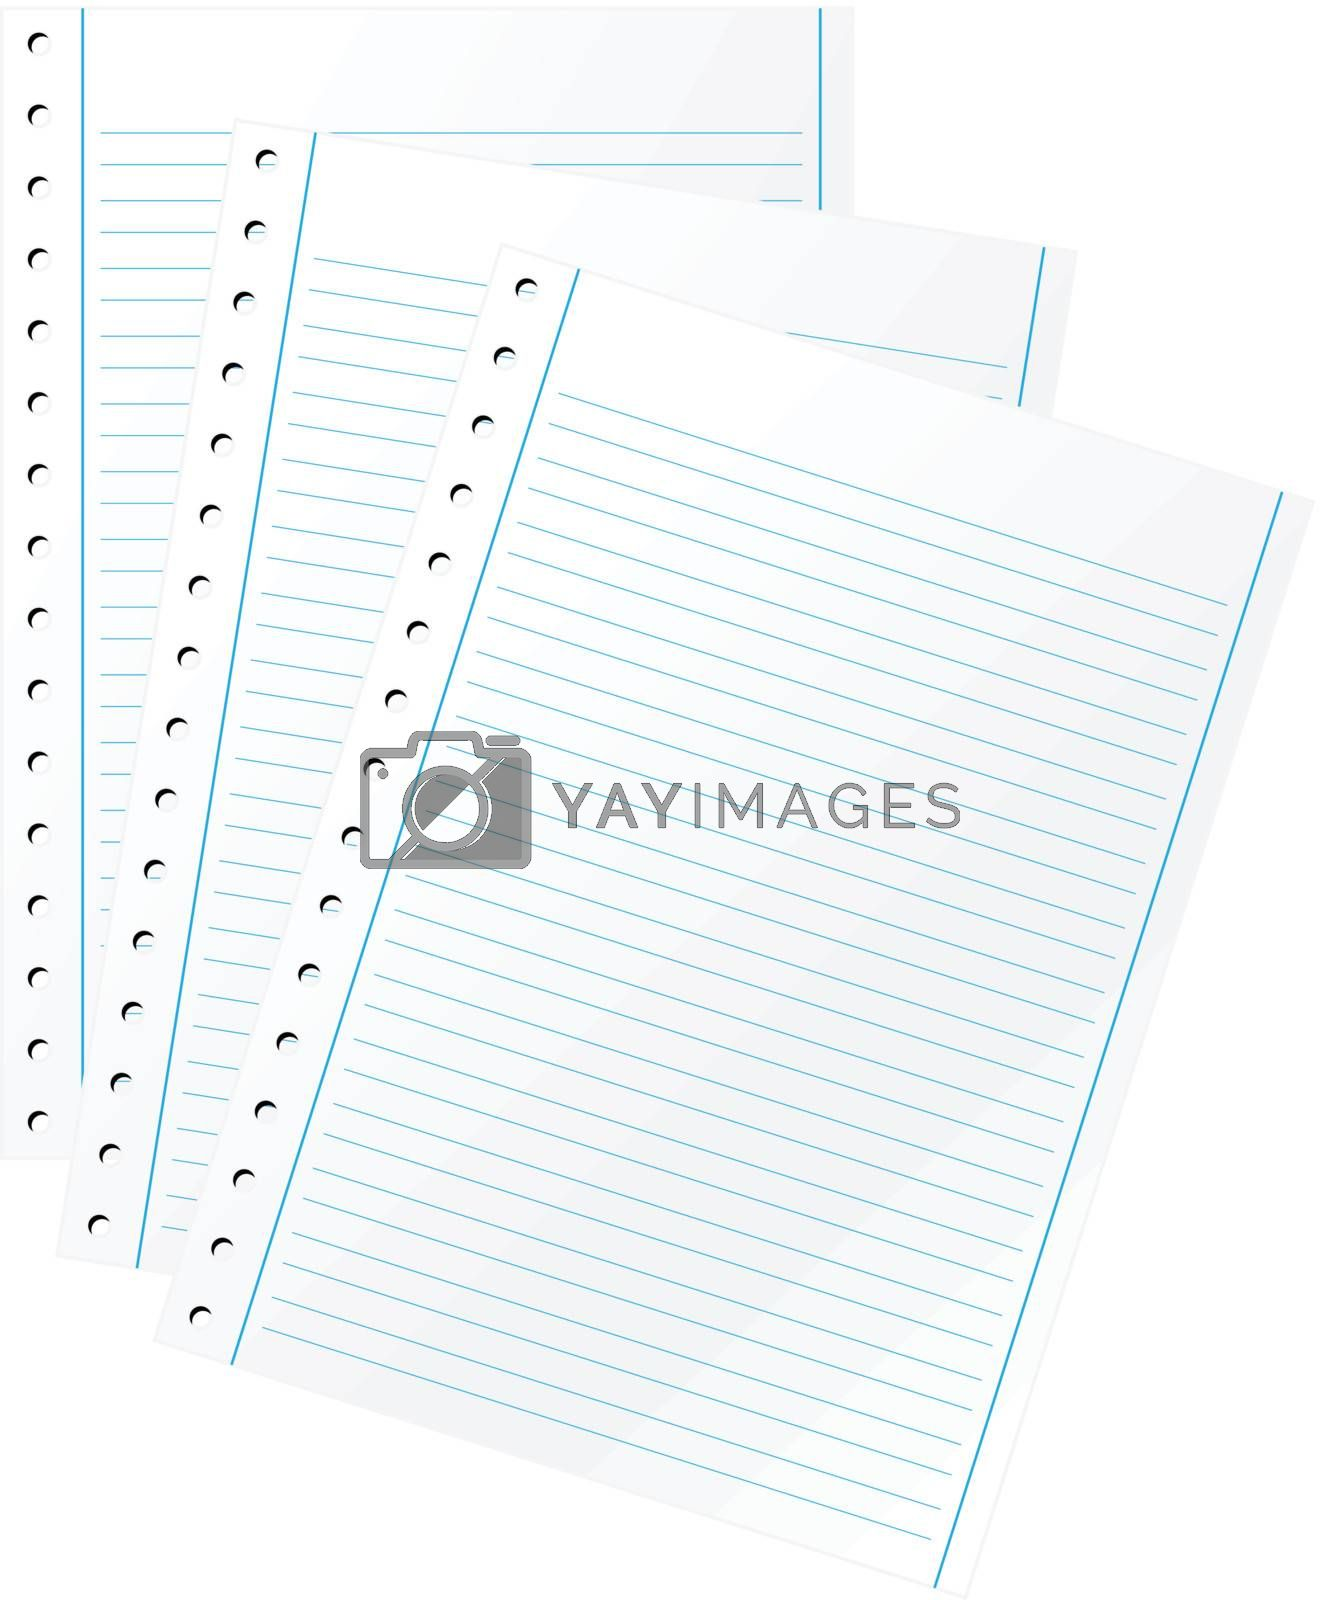 Royalty free image of Blank Sheets of Paper by ajn